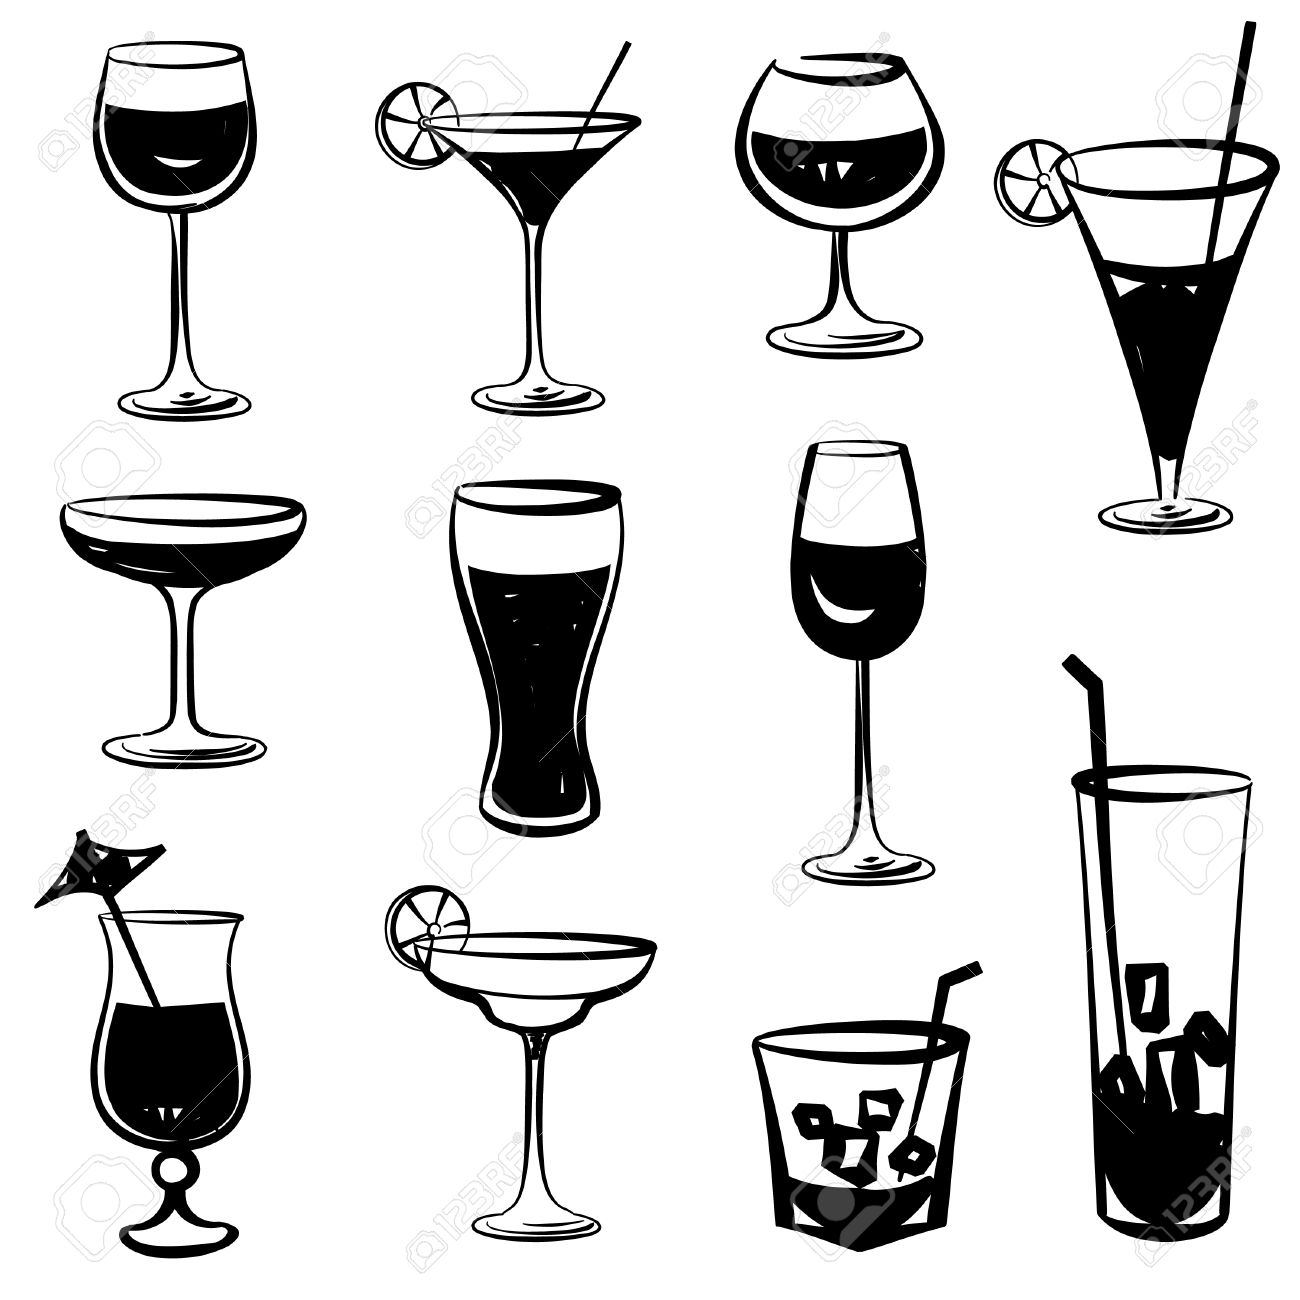 403 Champagne Glass free clipart.